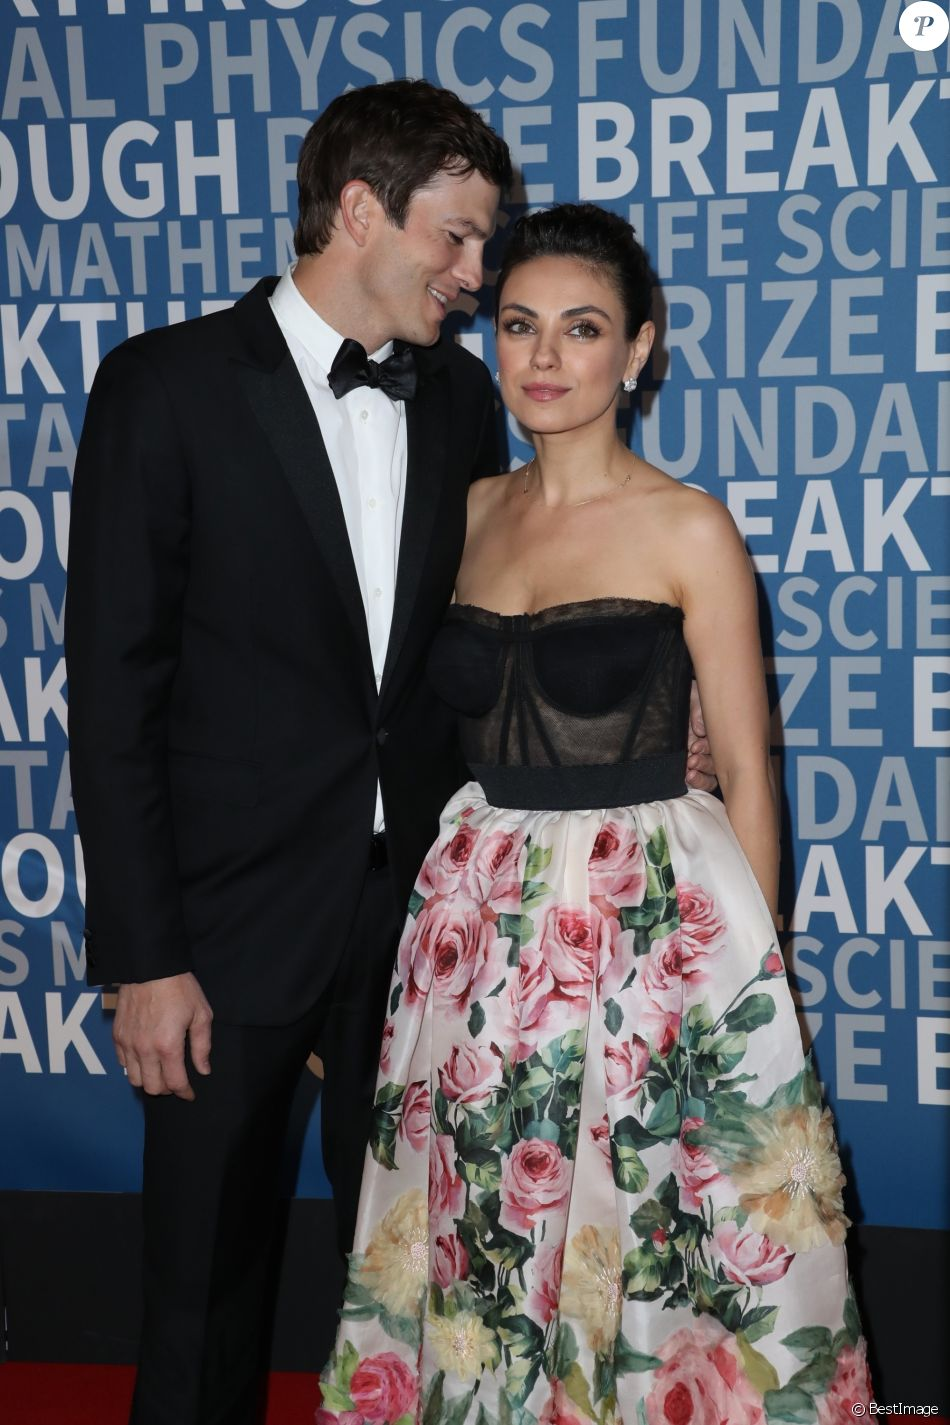 Ashton Kutcher et sa femme Mila Kunis à la 6ème cérémonie Breakthrough Prize au NASA Ames Research Center à Mountain View, le 3 décembre 2017